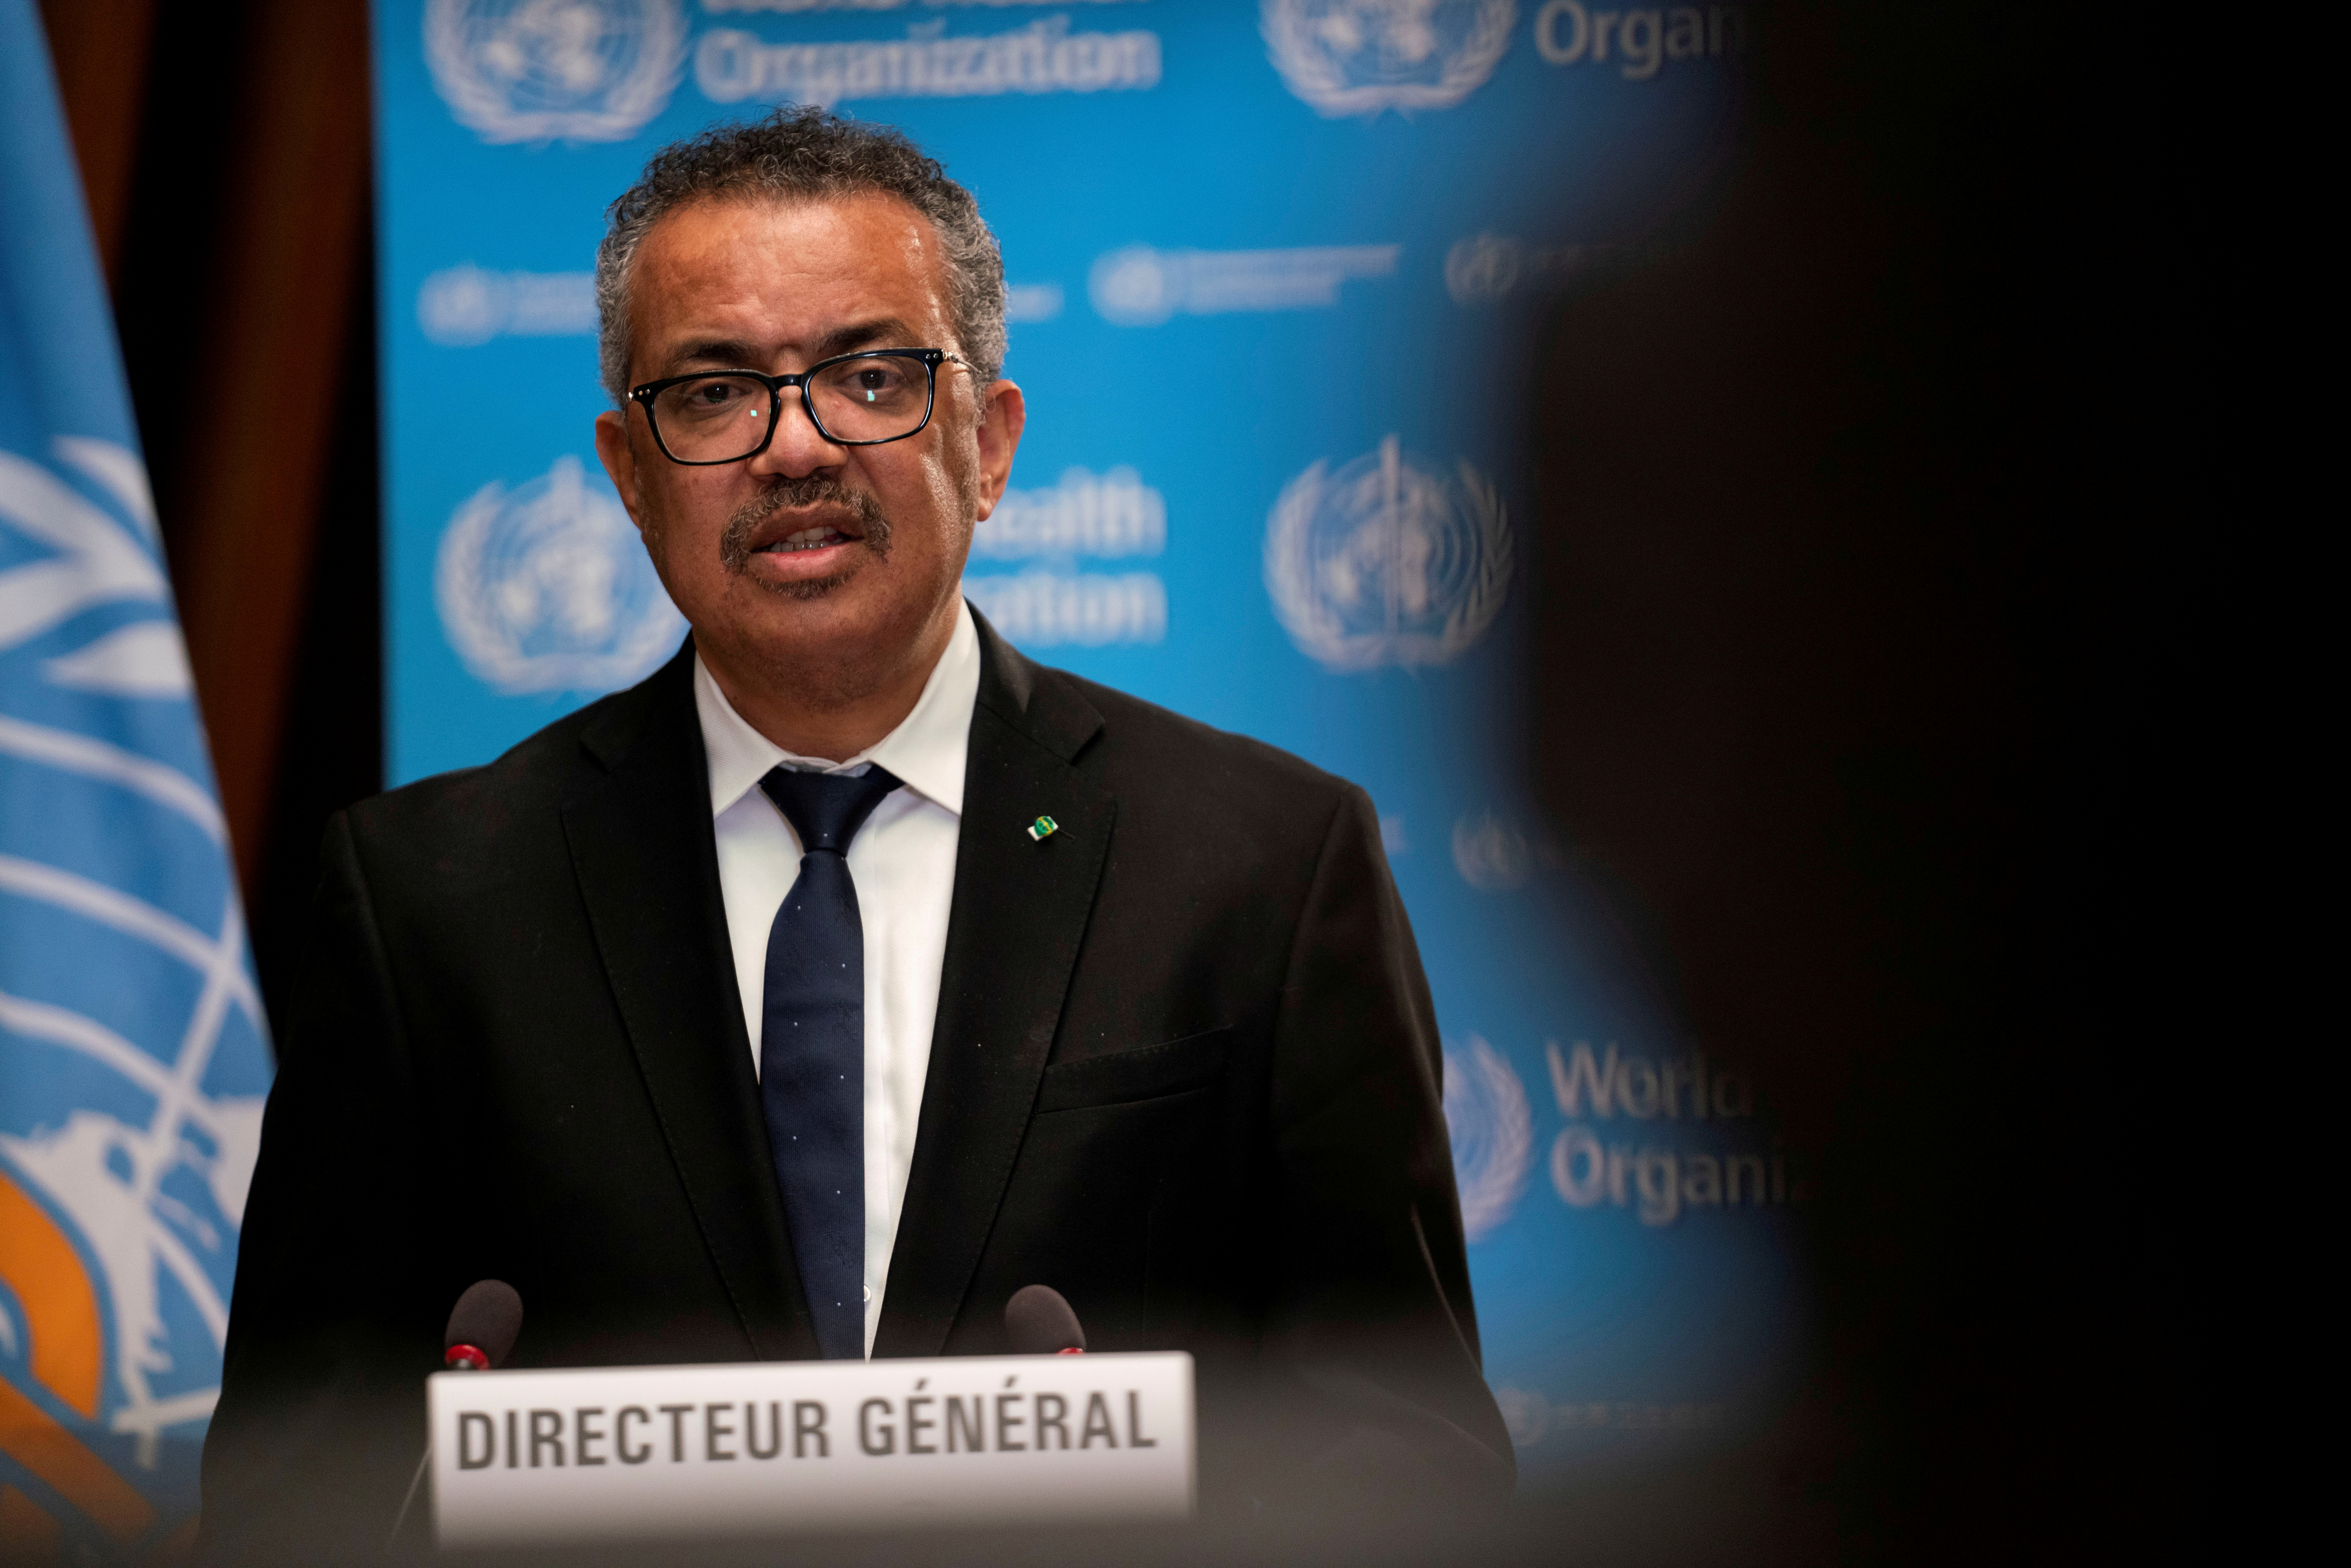 Tedros Adhanom Ghebreyesus, Director General of the World Health Organization (WHO) speaks during the opening of the 148th session of the Executive Board on the coronavirus disease (COVID-19) outbreak in Geneva, Switzerland, January 18, 2021.  Christopher Black/WHO/Handout/File Photo